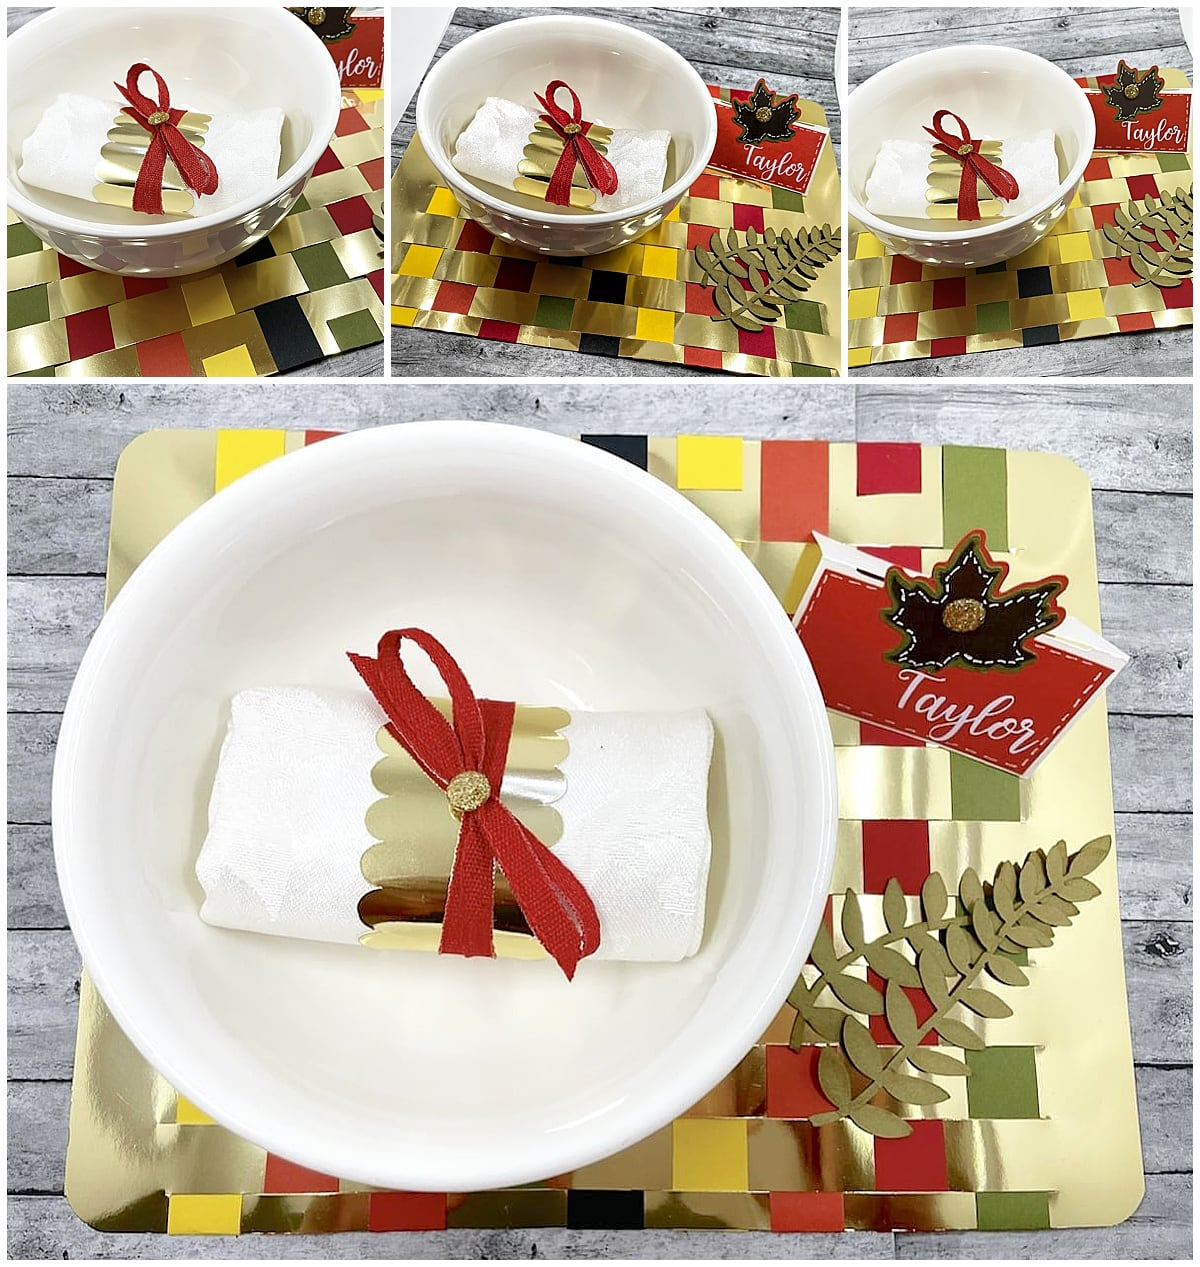 finished Autumn table place setting